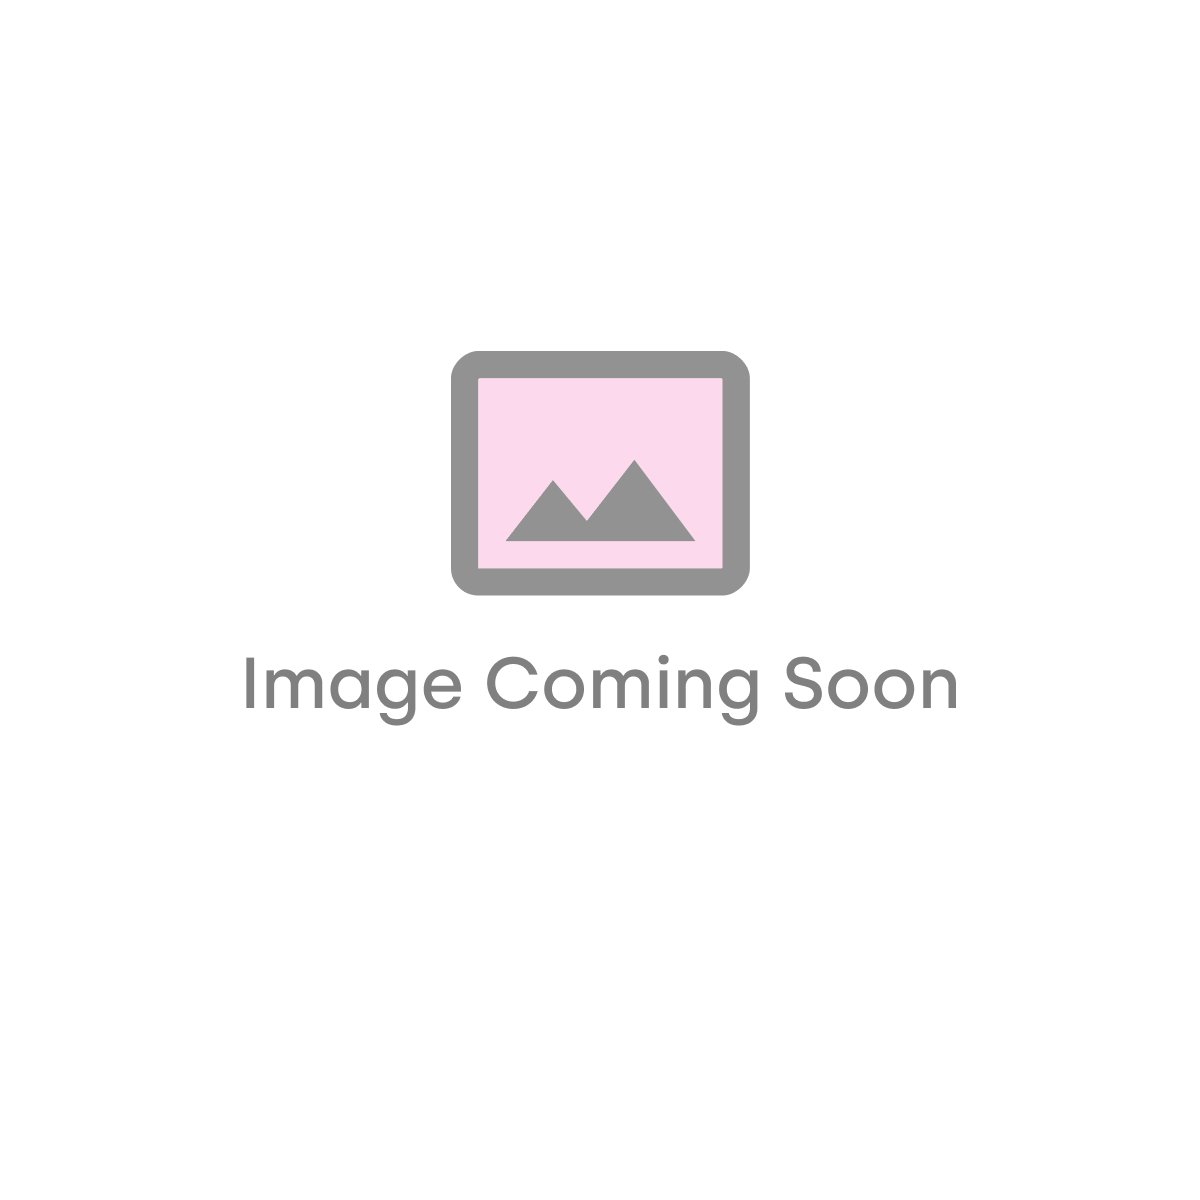 Roma Straight Heated Towel Rail  - 1800mm x 500mm - Anthracite (19720)